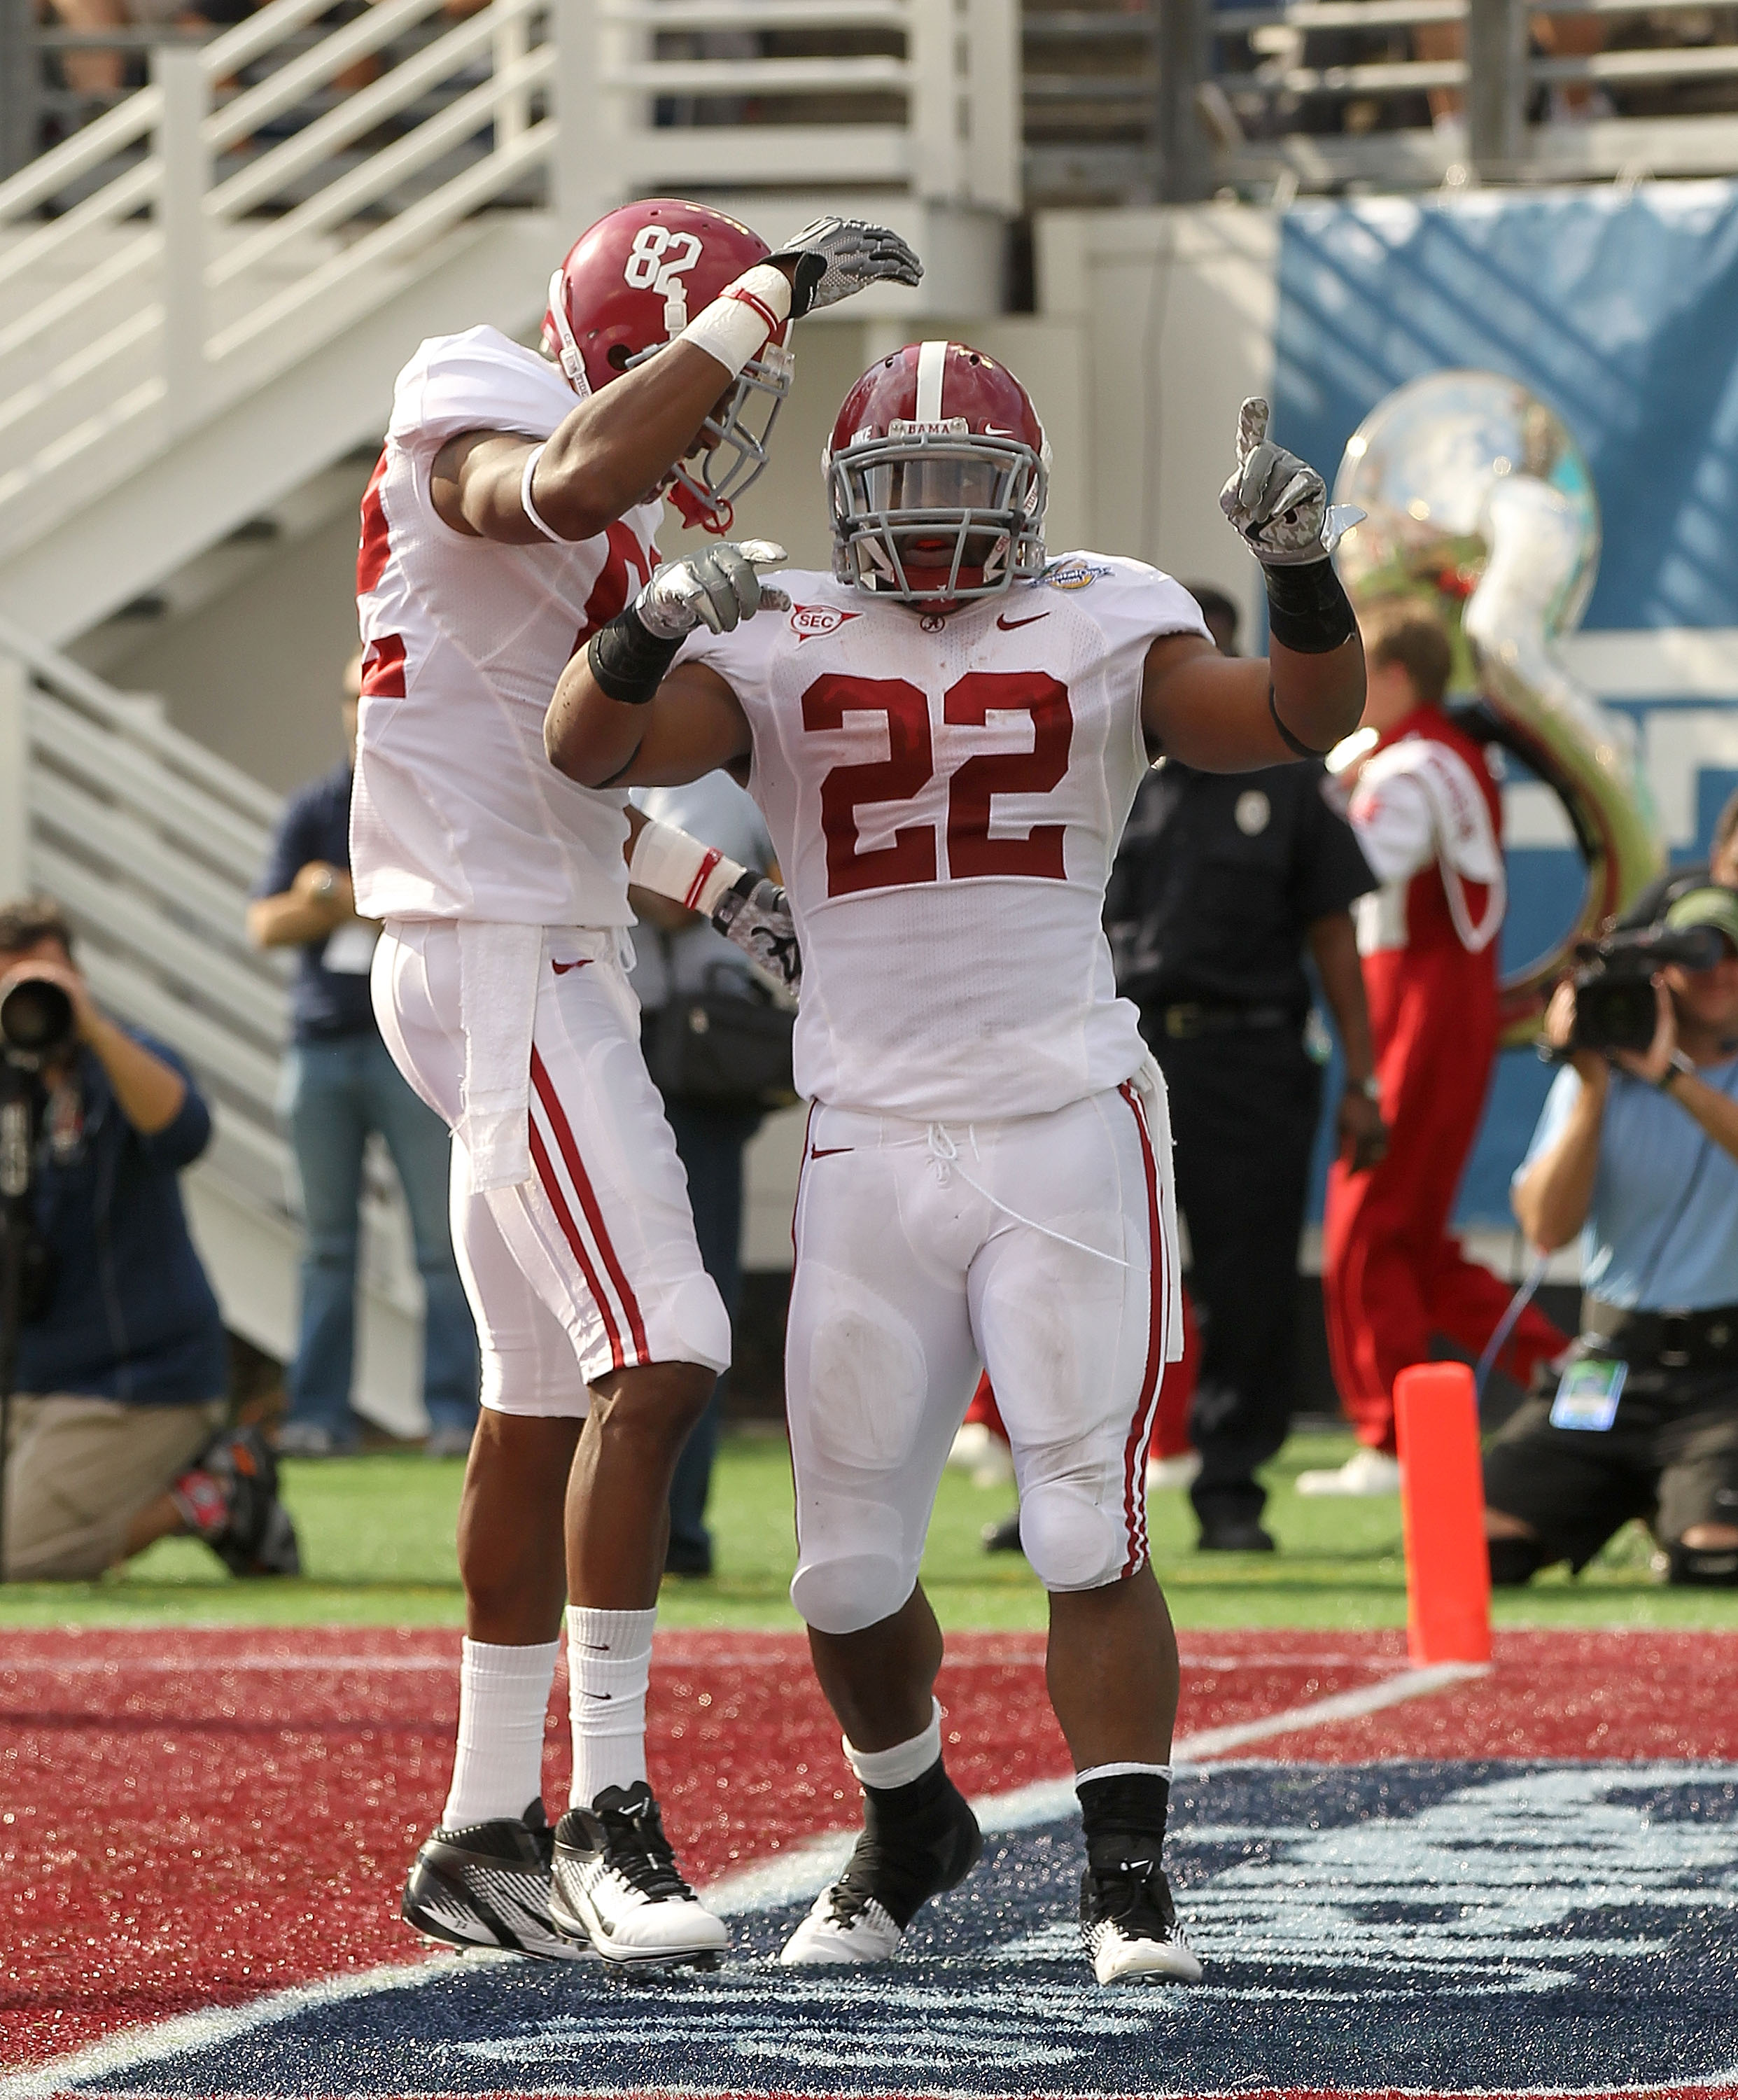 ORLANDO, FL - JANUARY 01:  Mark Ingram #22 of the Alabama Crimson Tide celebrates after rushing for a touchdown during the Capitol One Bowl against the Michigan State Spartans at the Florida Citrus Bowl on January 1, 2011 in Orlando, Florida.  (Photo by M